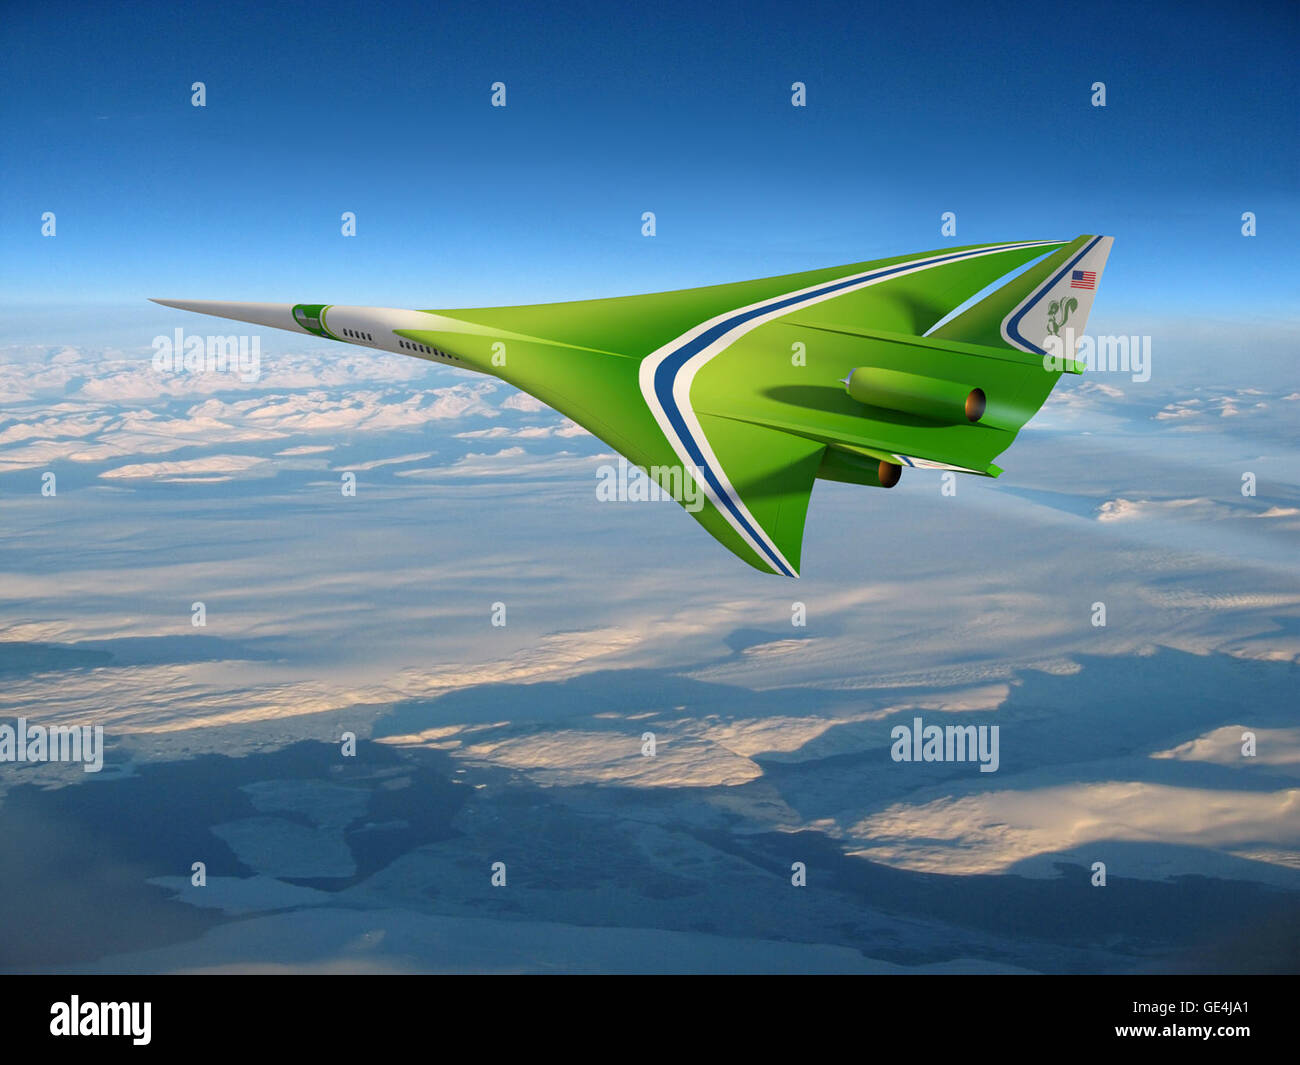 This updated future aircraft design concept from NASA research partner Lockheed Martin shows a few changes from - Stock Image